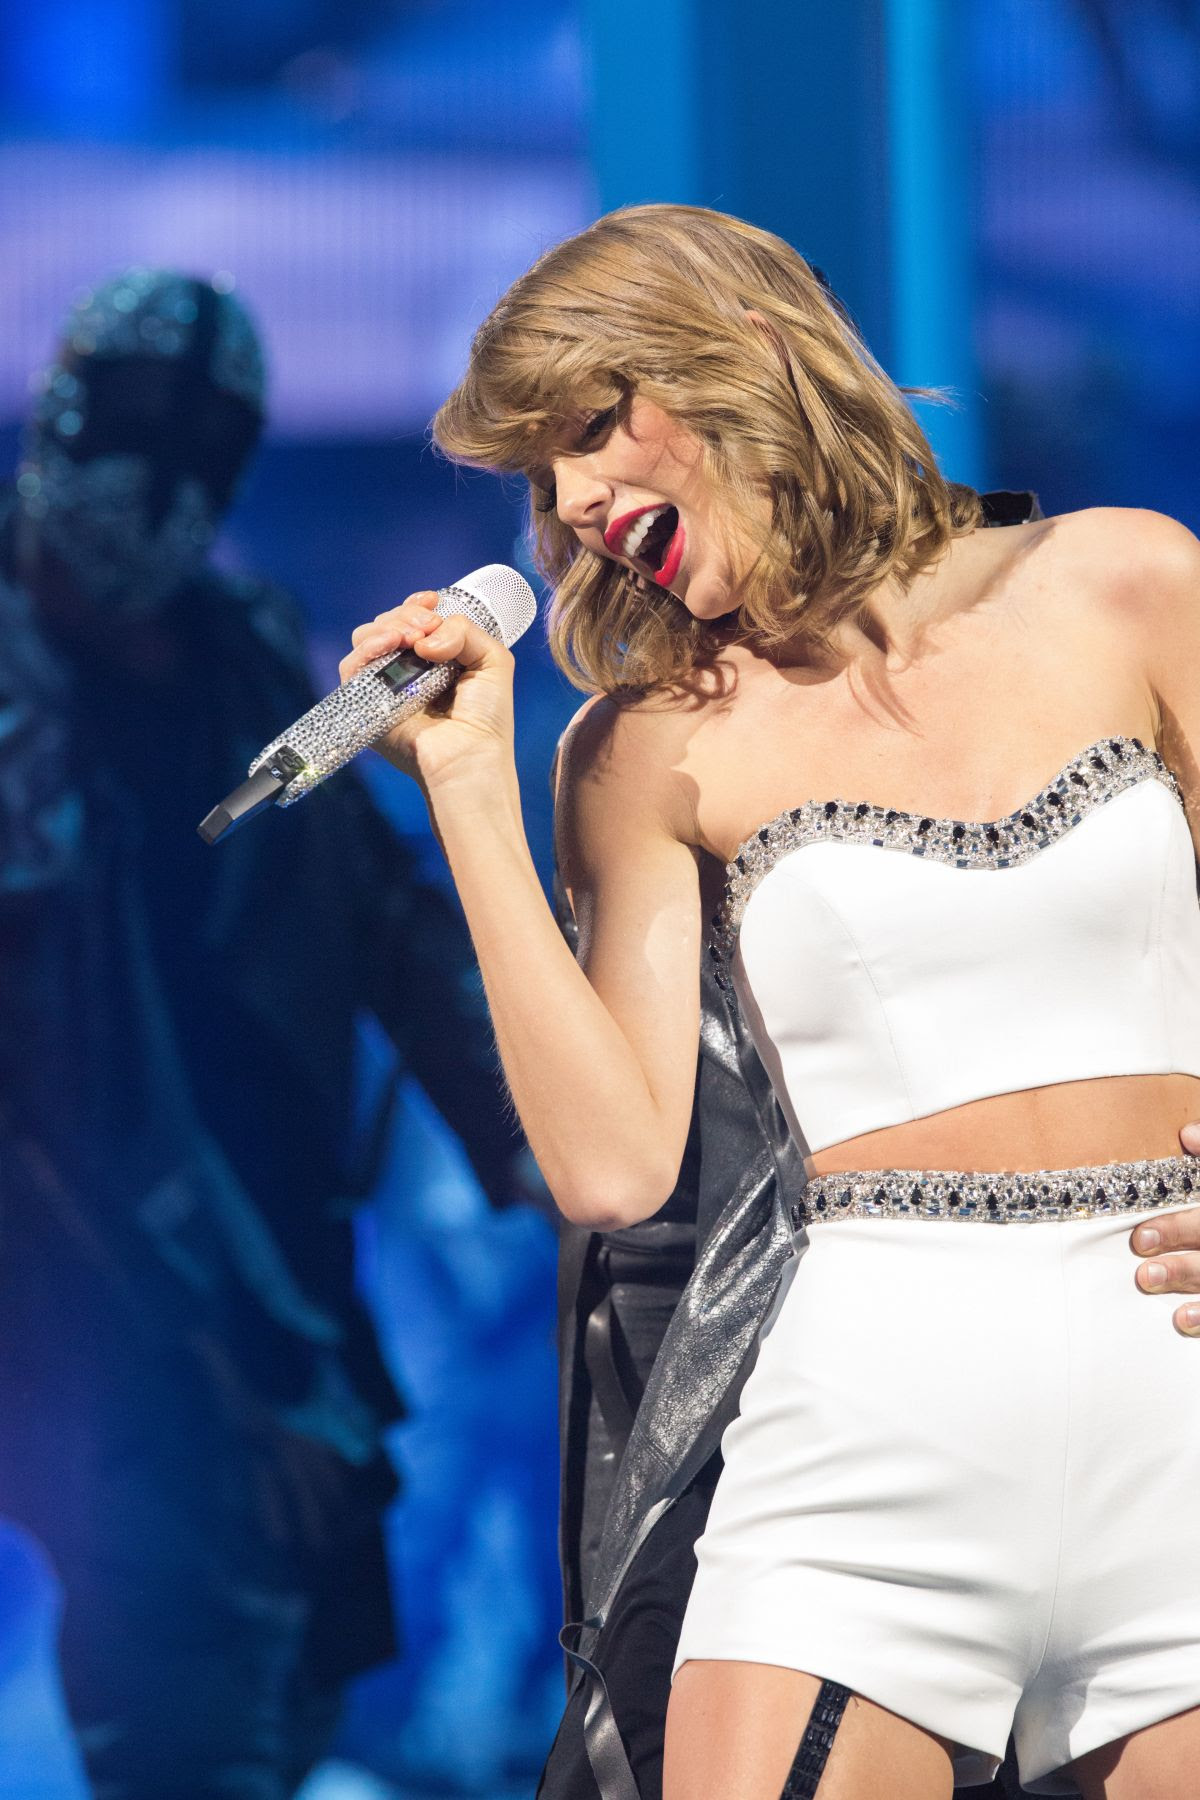 TAYLOR SWIFT Performs at 1989 World Tour in Singapore 11/07/2015